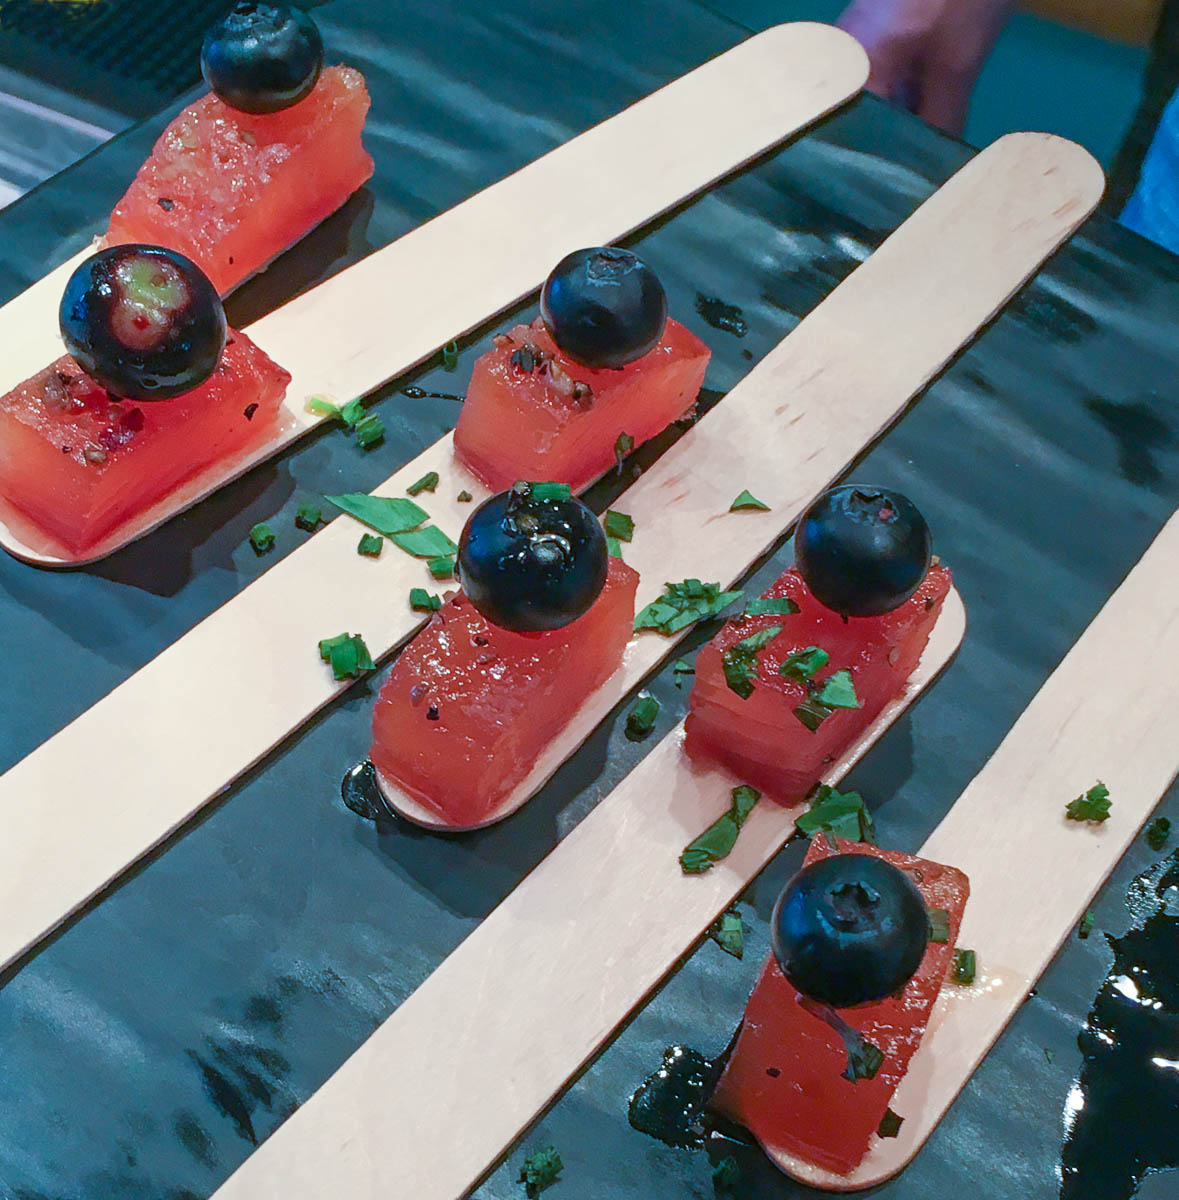 Several small cubes of salmon tartare topped with a fresh blueberry on a stick.